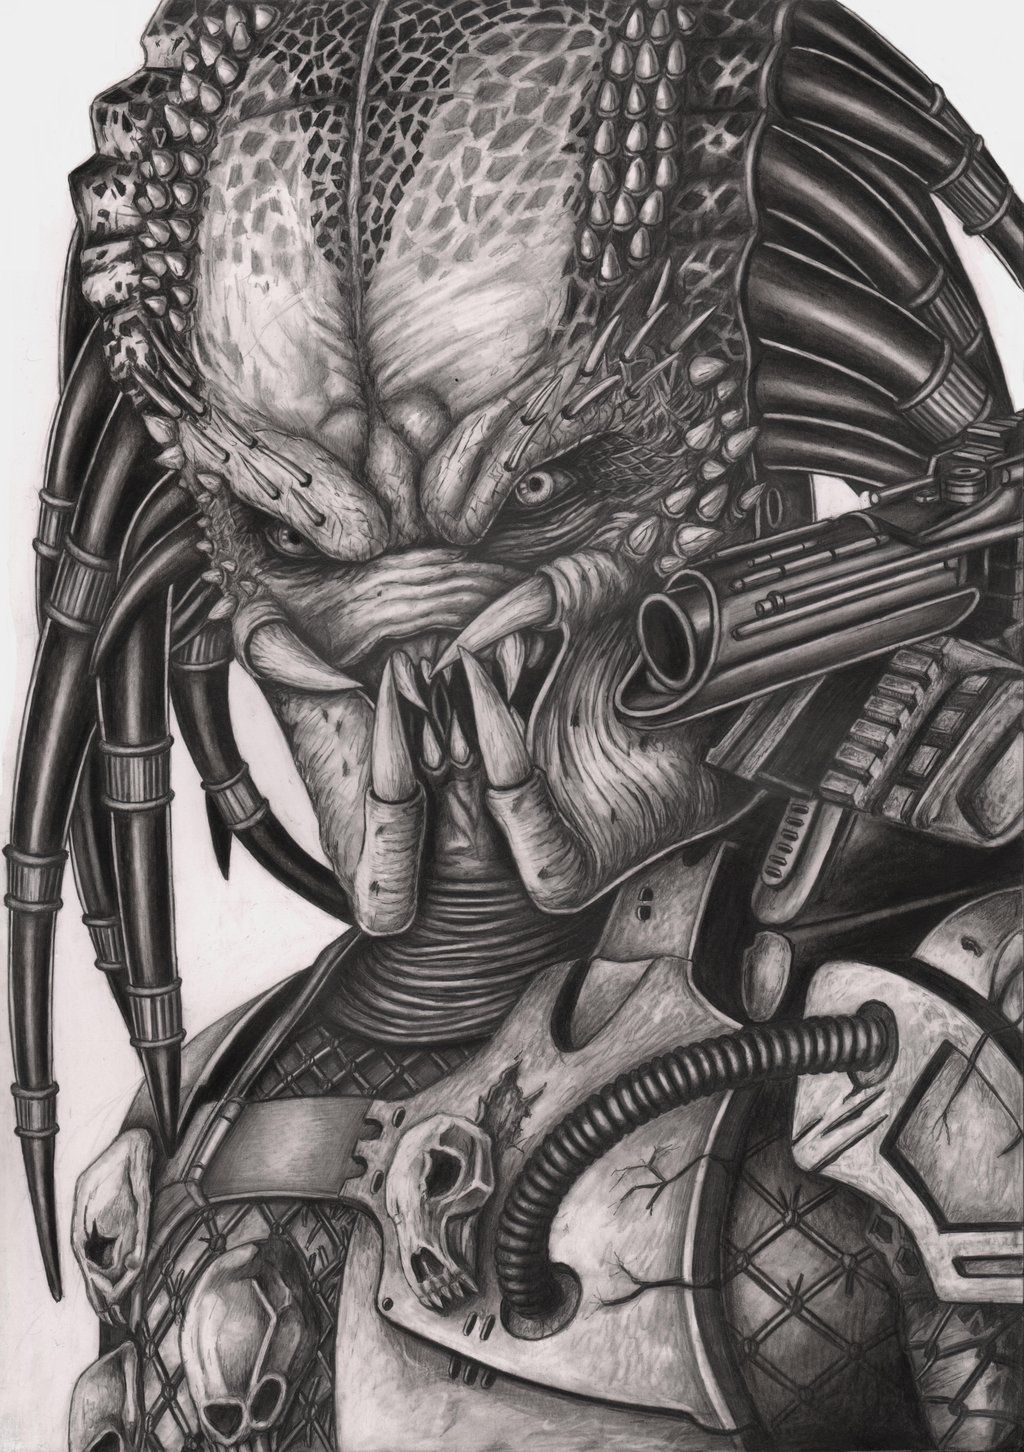 Predator graphite drawing by pen tacular artist deviantart com on deviantart